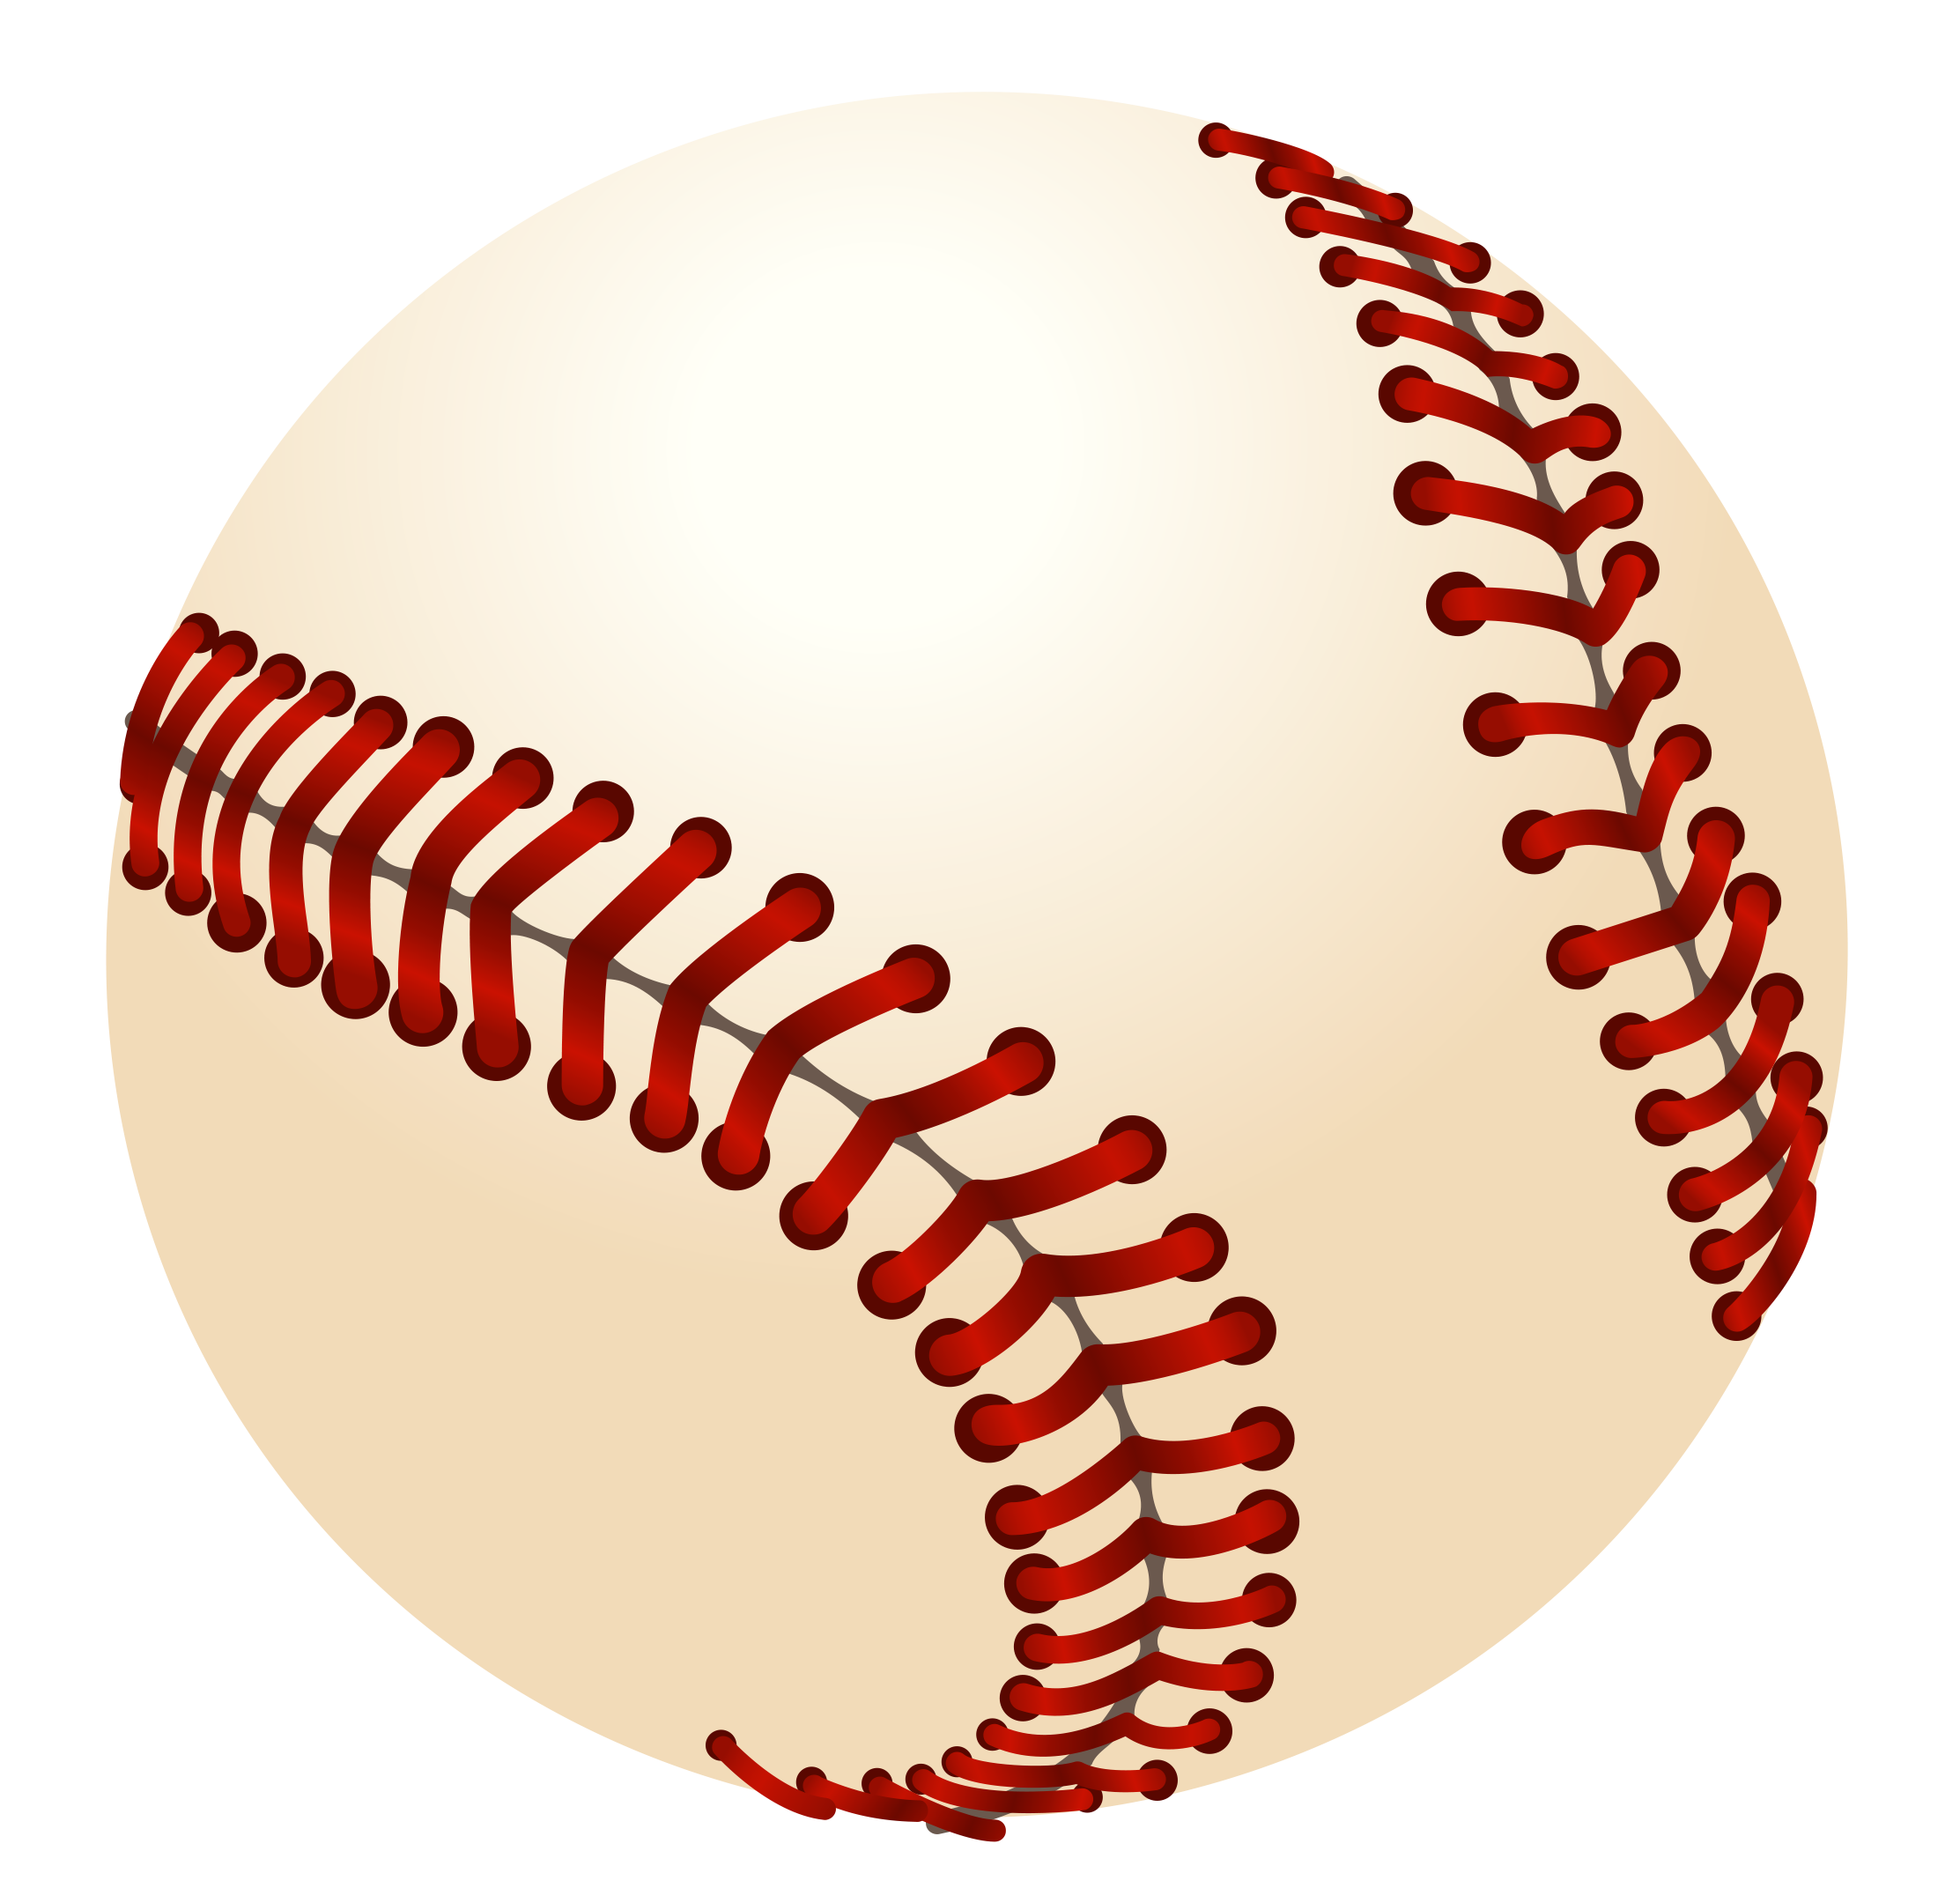 2225x2160 Baseball clipart high resolution